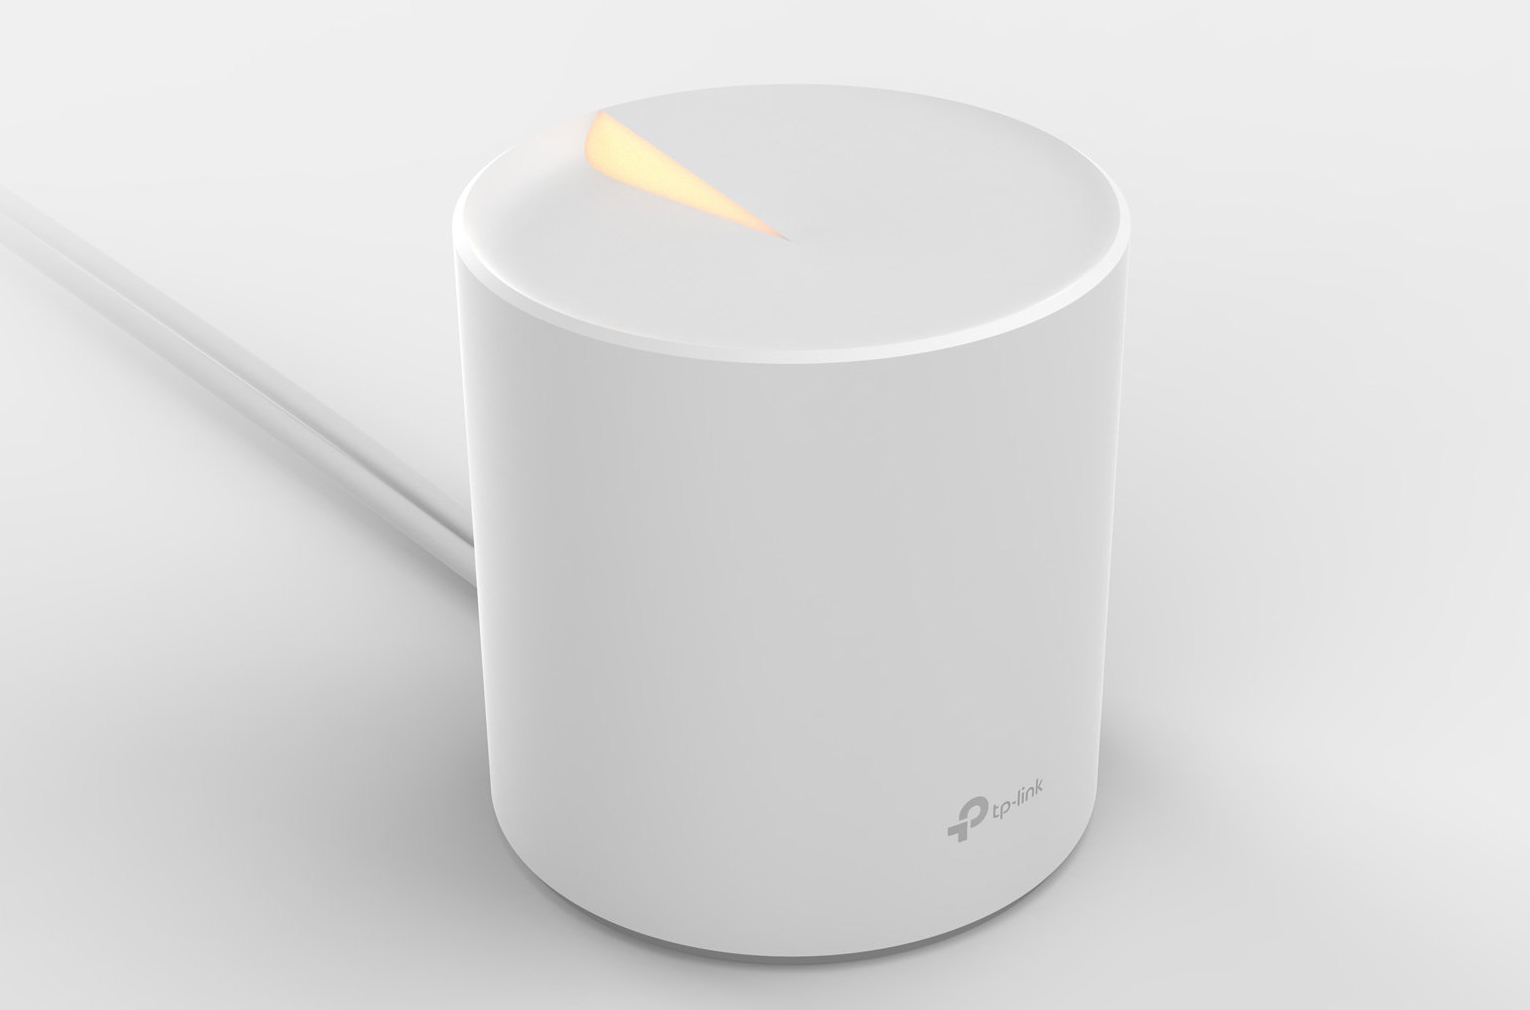 TP-Link-Deco X10-WiFi 6 routers